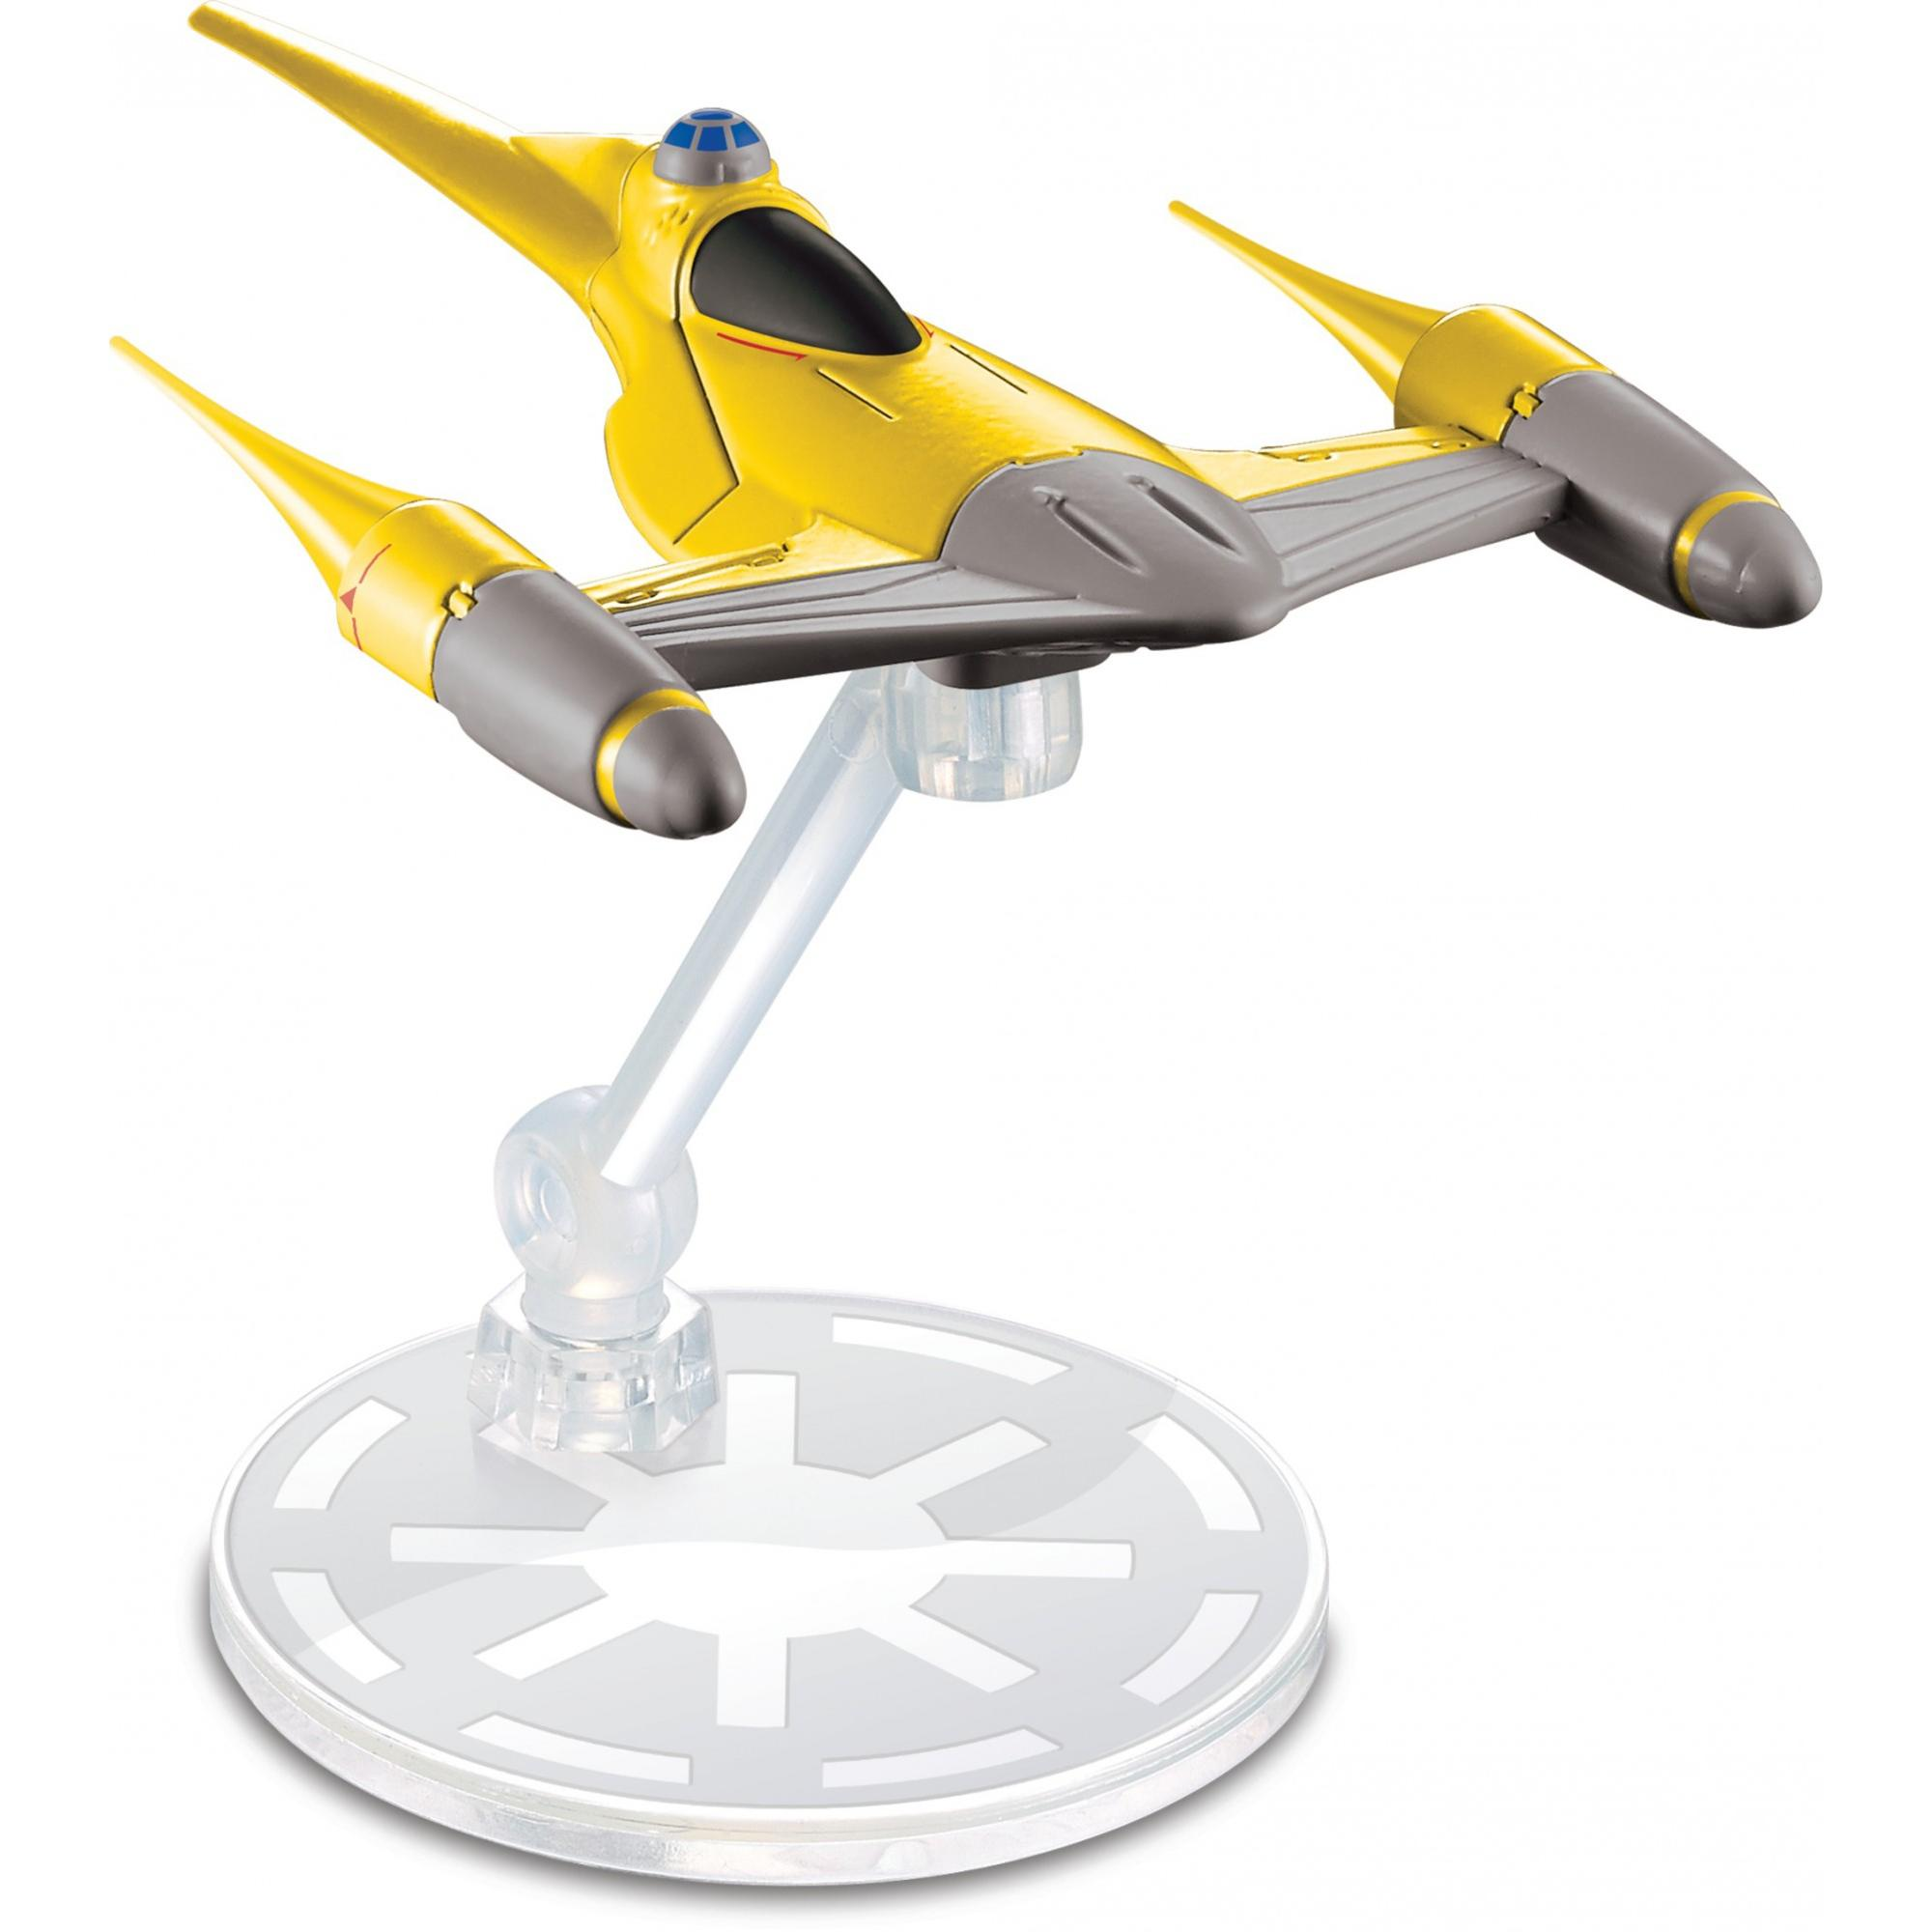 Hot Wheels Star Wars Starships Naboo Starfighter Vehicle